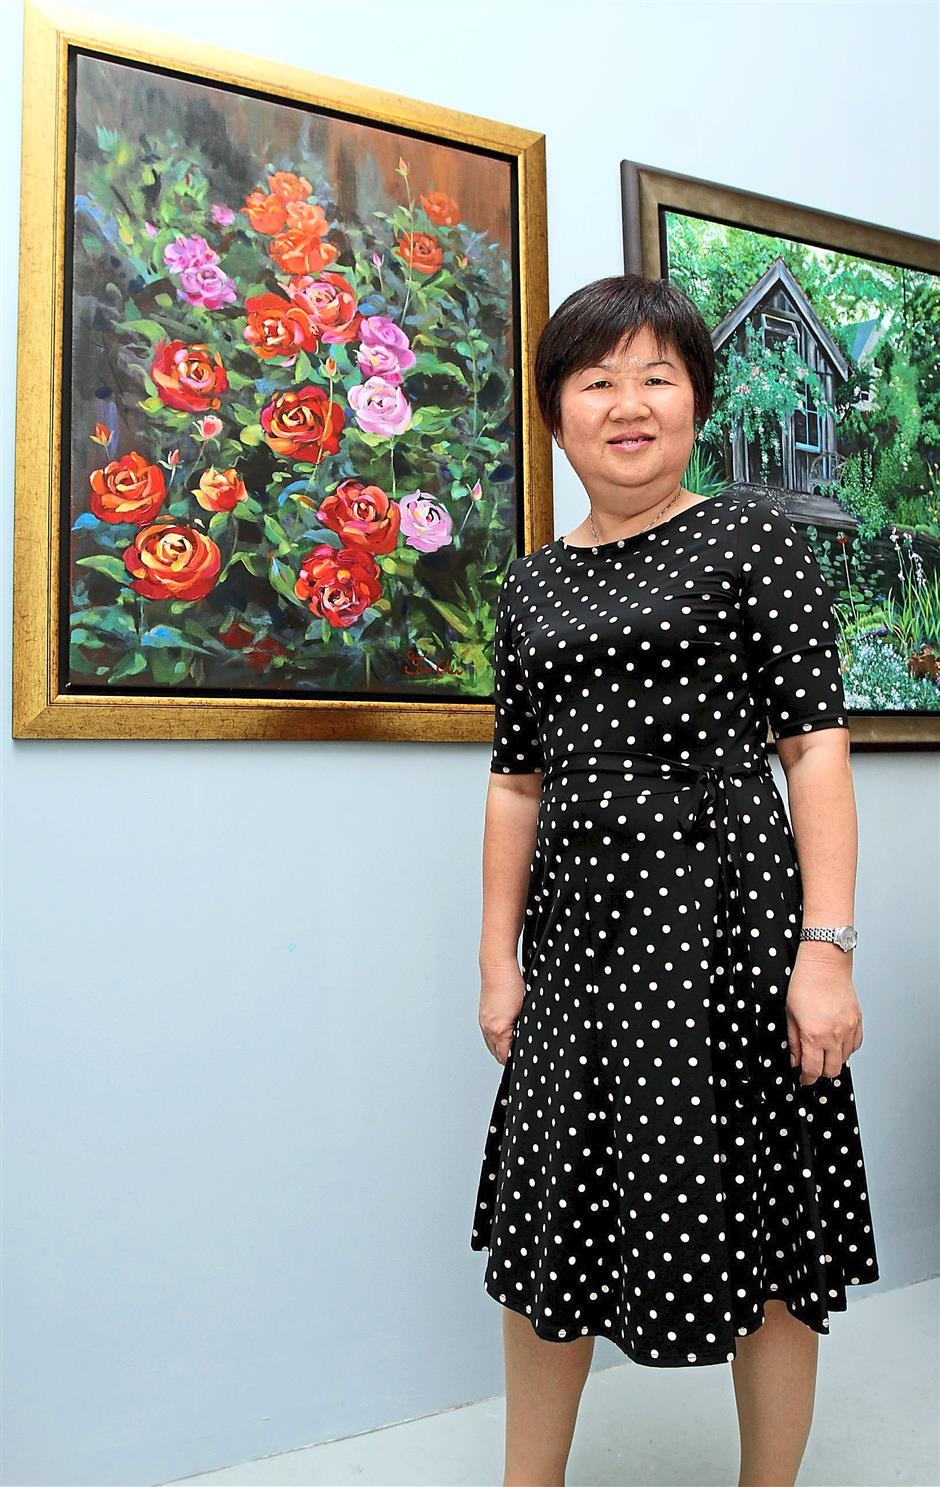 Simply lovely: Yee (right) showing her acrylic paintings that feature landscape and flowers.